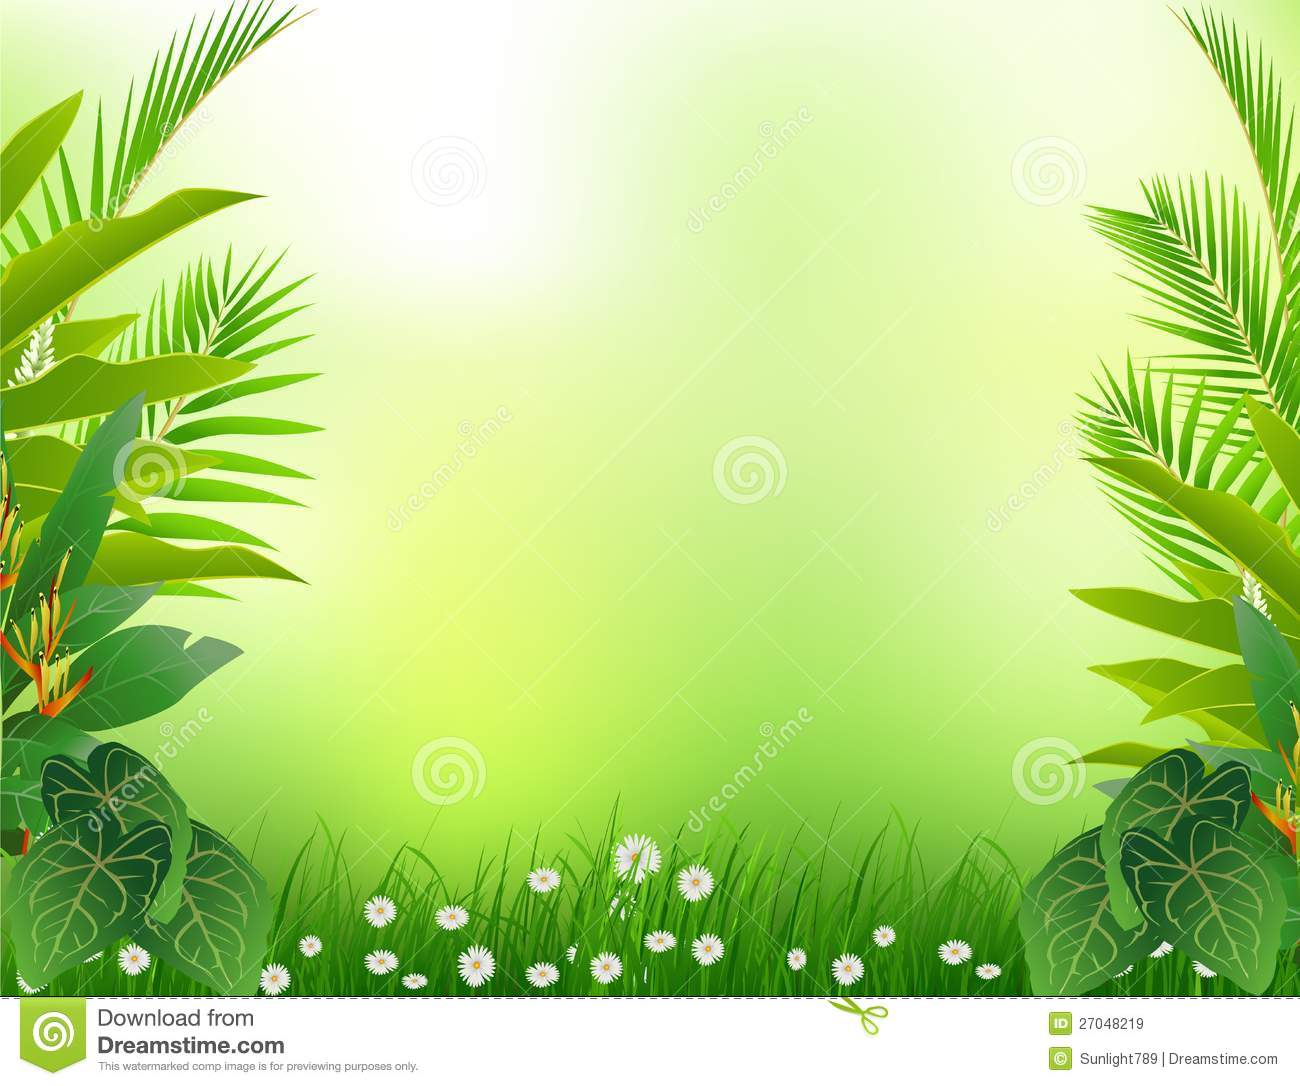 Background cliparts free download graphic library Jungle background clipart free - ClipartFest graphic library